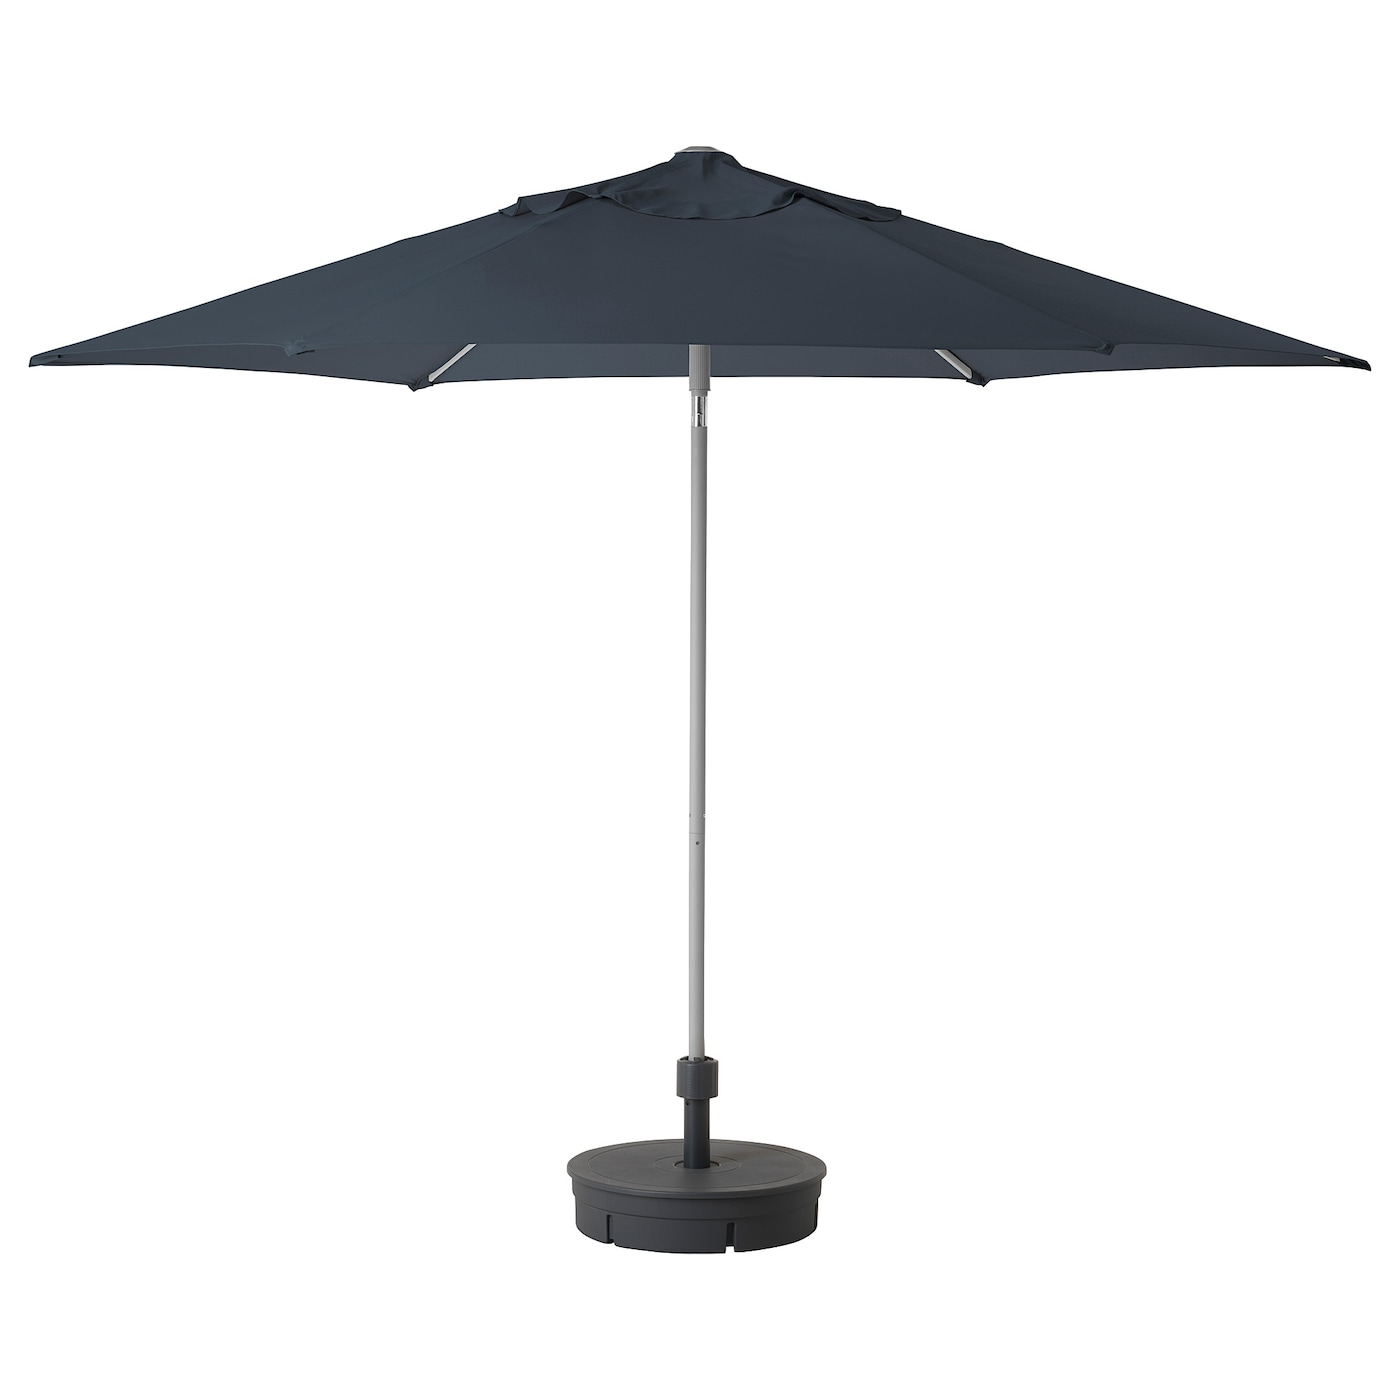 IKEA KUGGÖ/LINDÖJA parasol with base The strap with buckle keeps the fabric in place when folded.